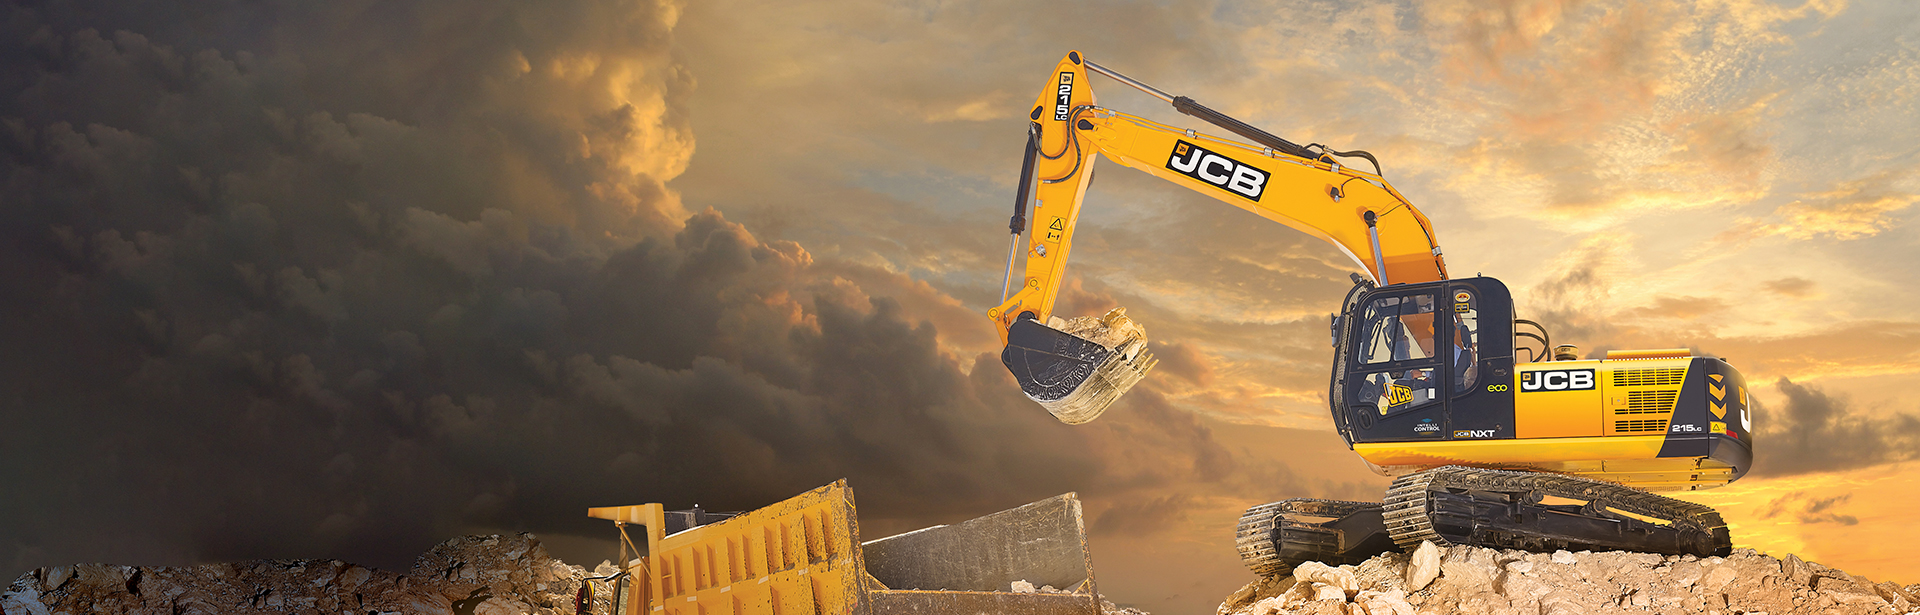 JCB Tracked Excavators Nagpur